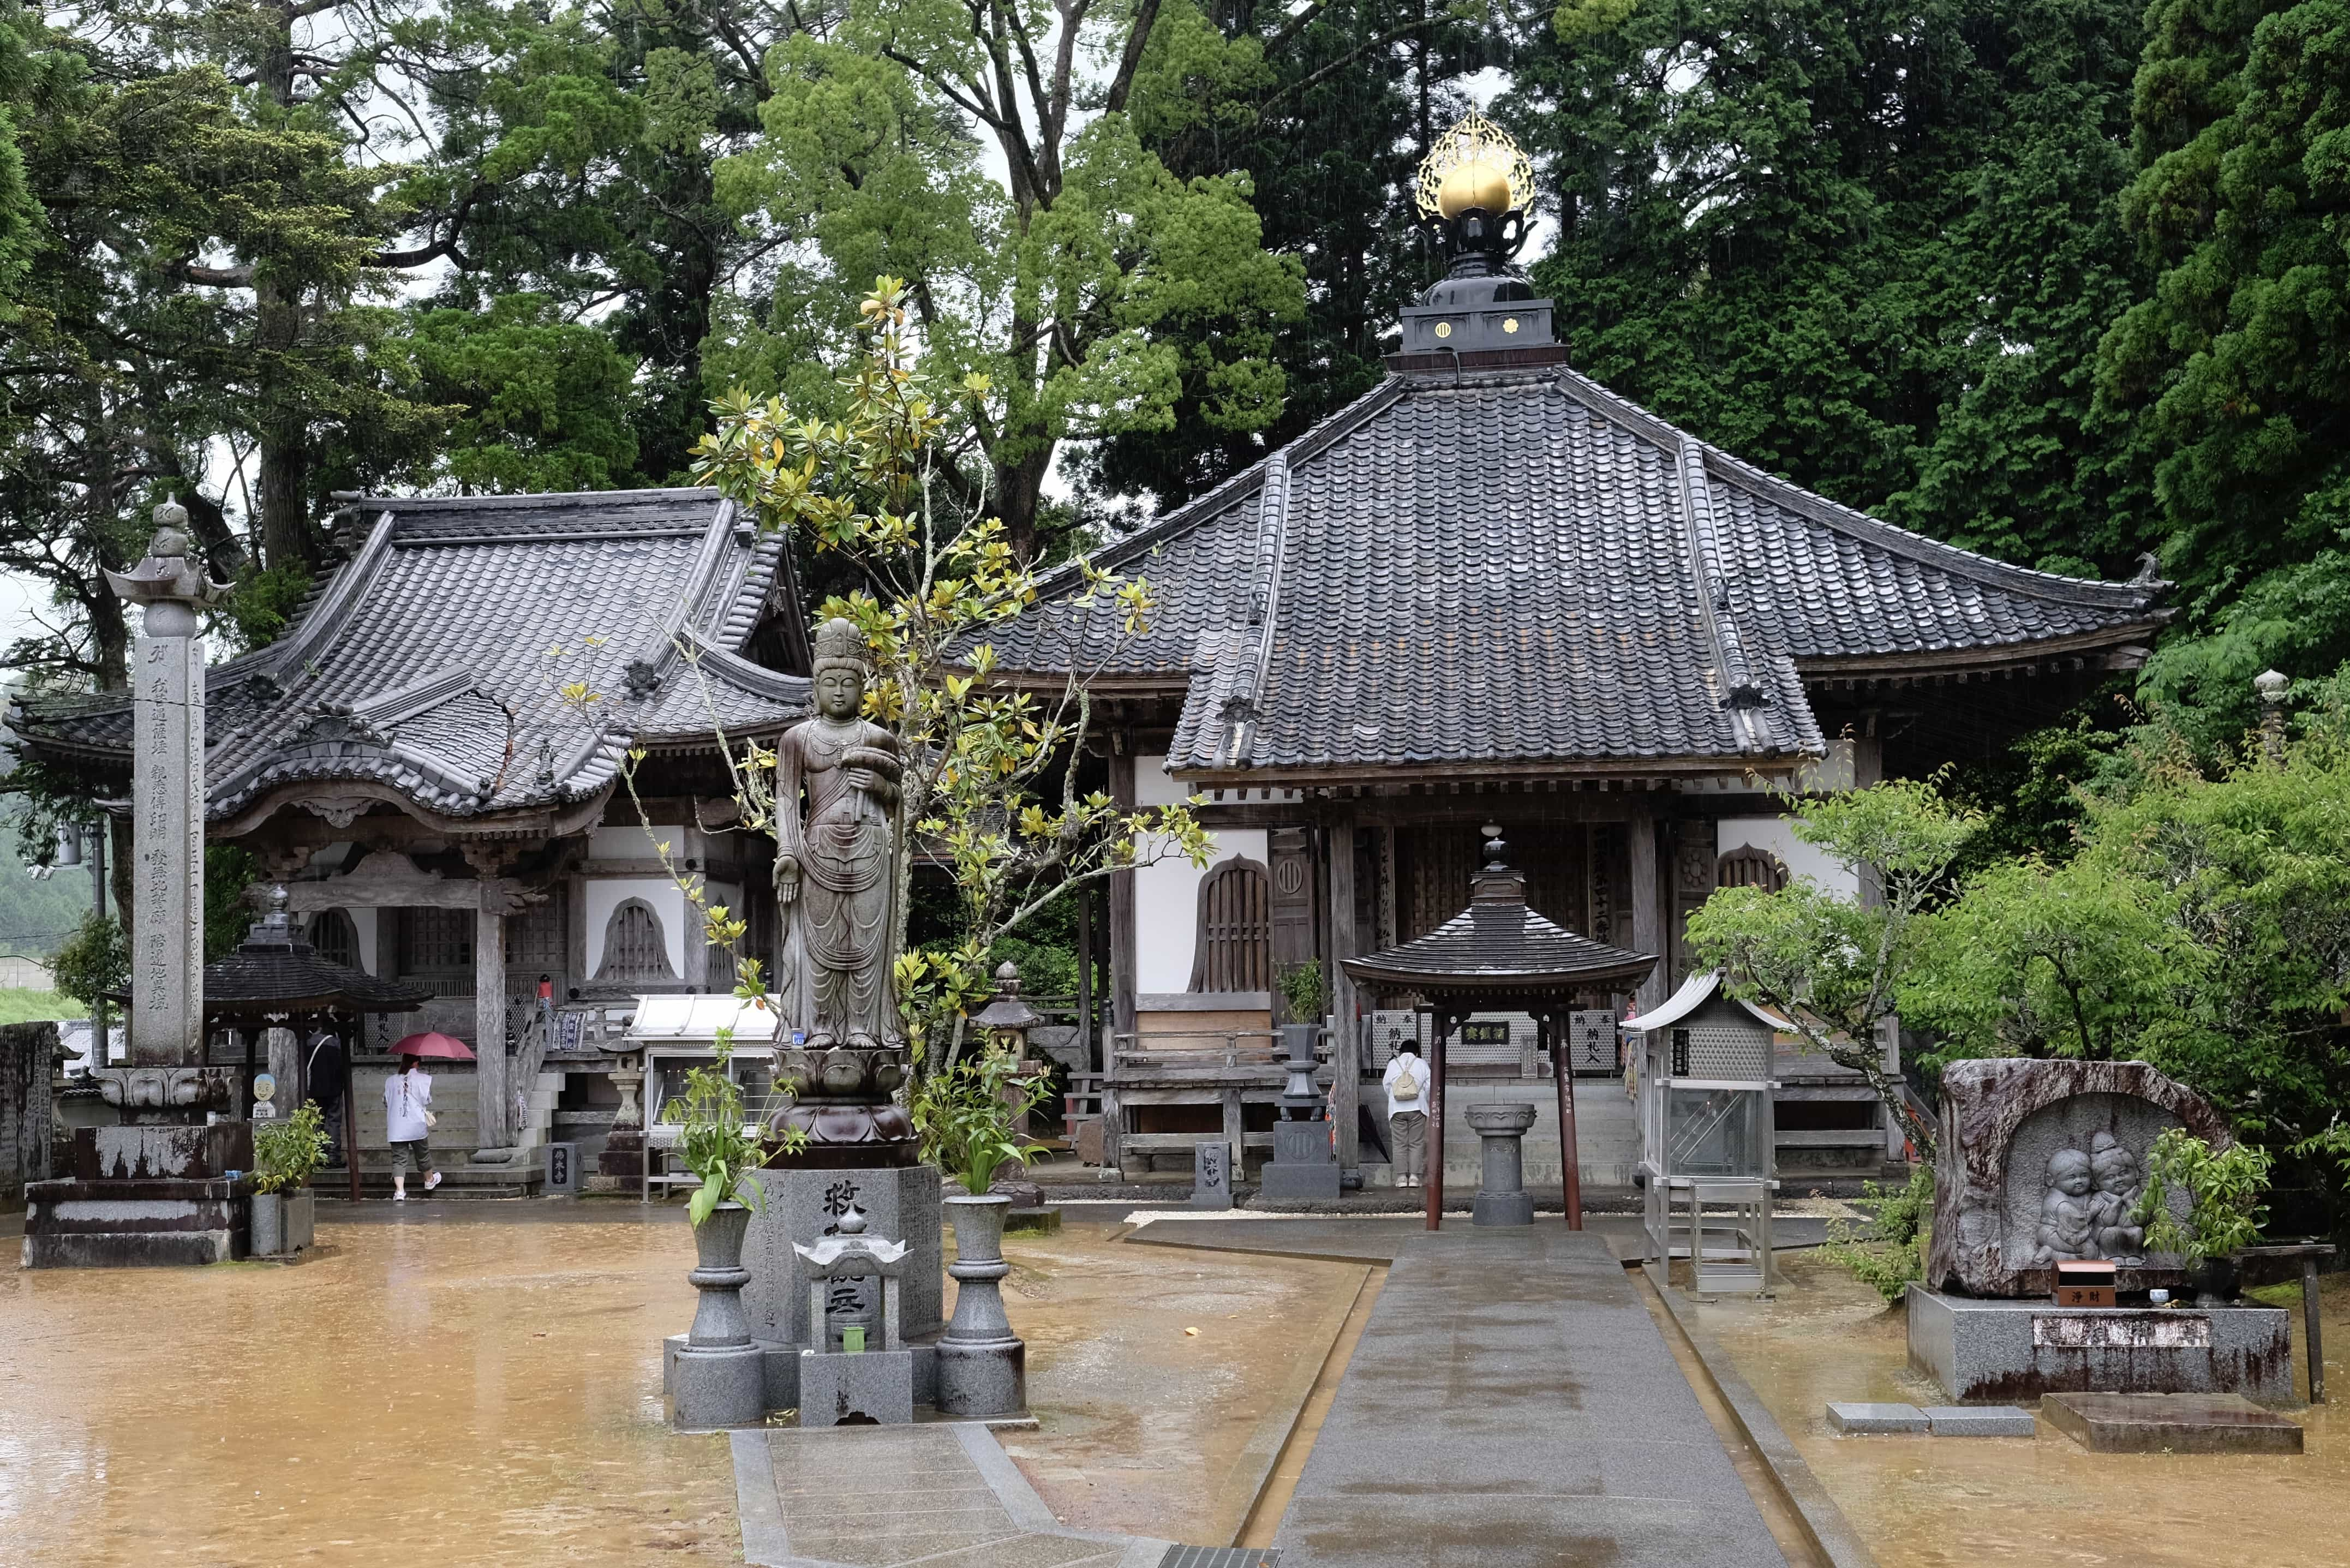 Butsumoku-ji in the rain